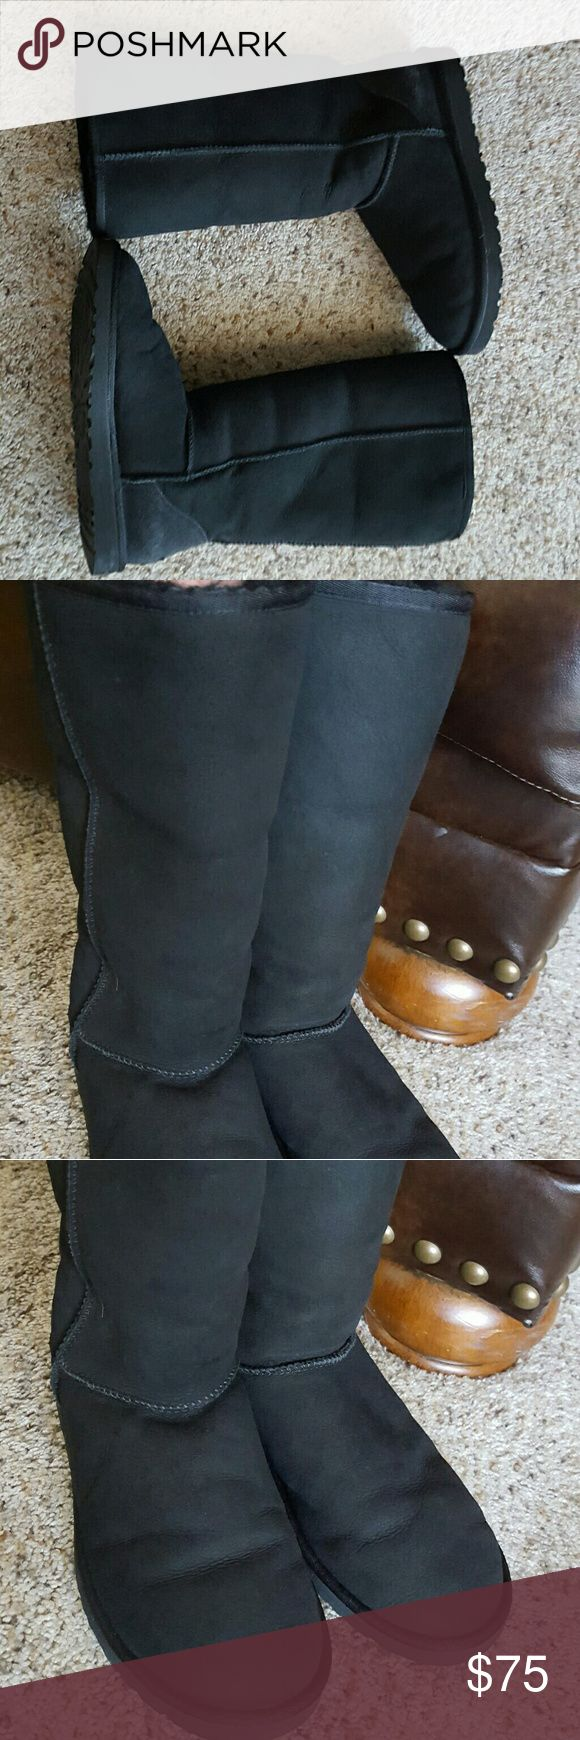 Ugg Classic Tall Boots Okay condition  Flaws are included in pictures UGG Shoes